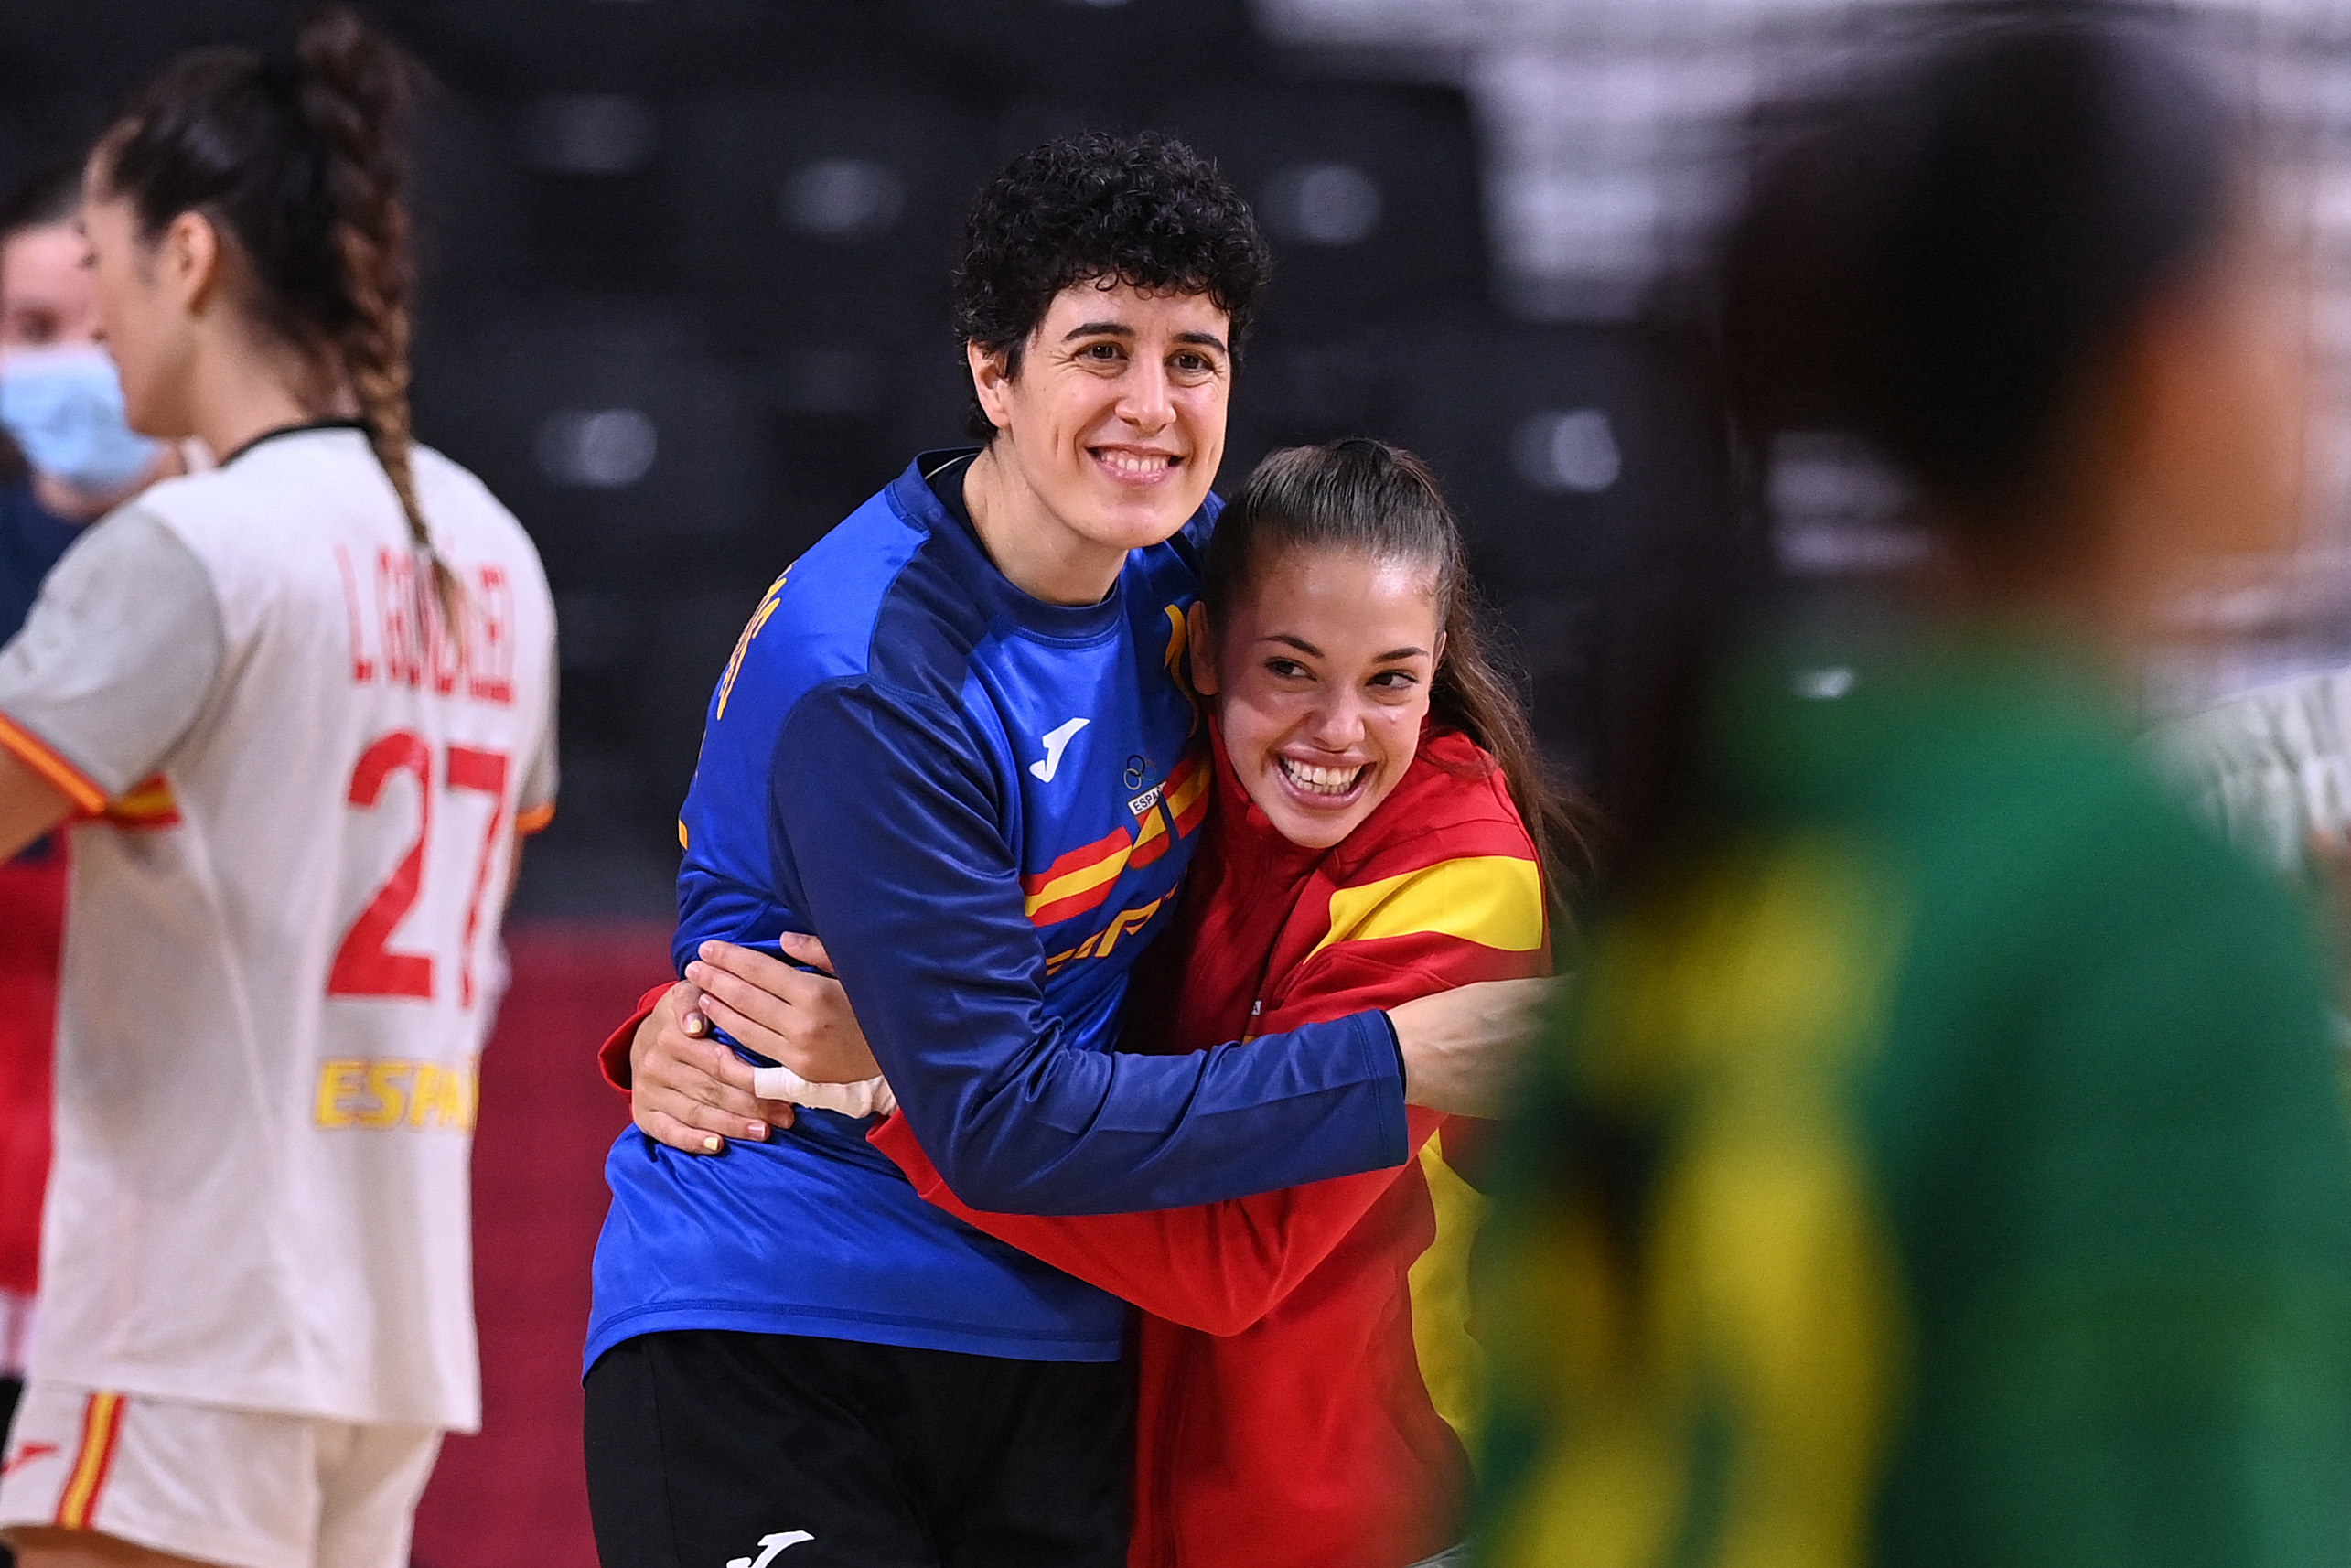 Spanish athletes hug and smile after competing in a handball match